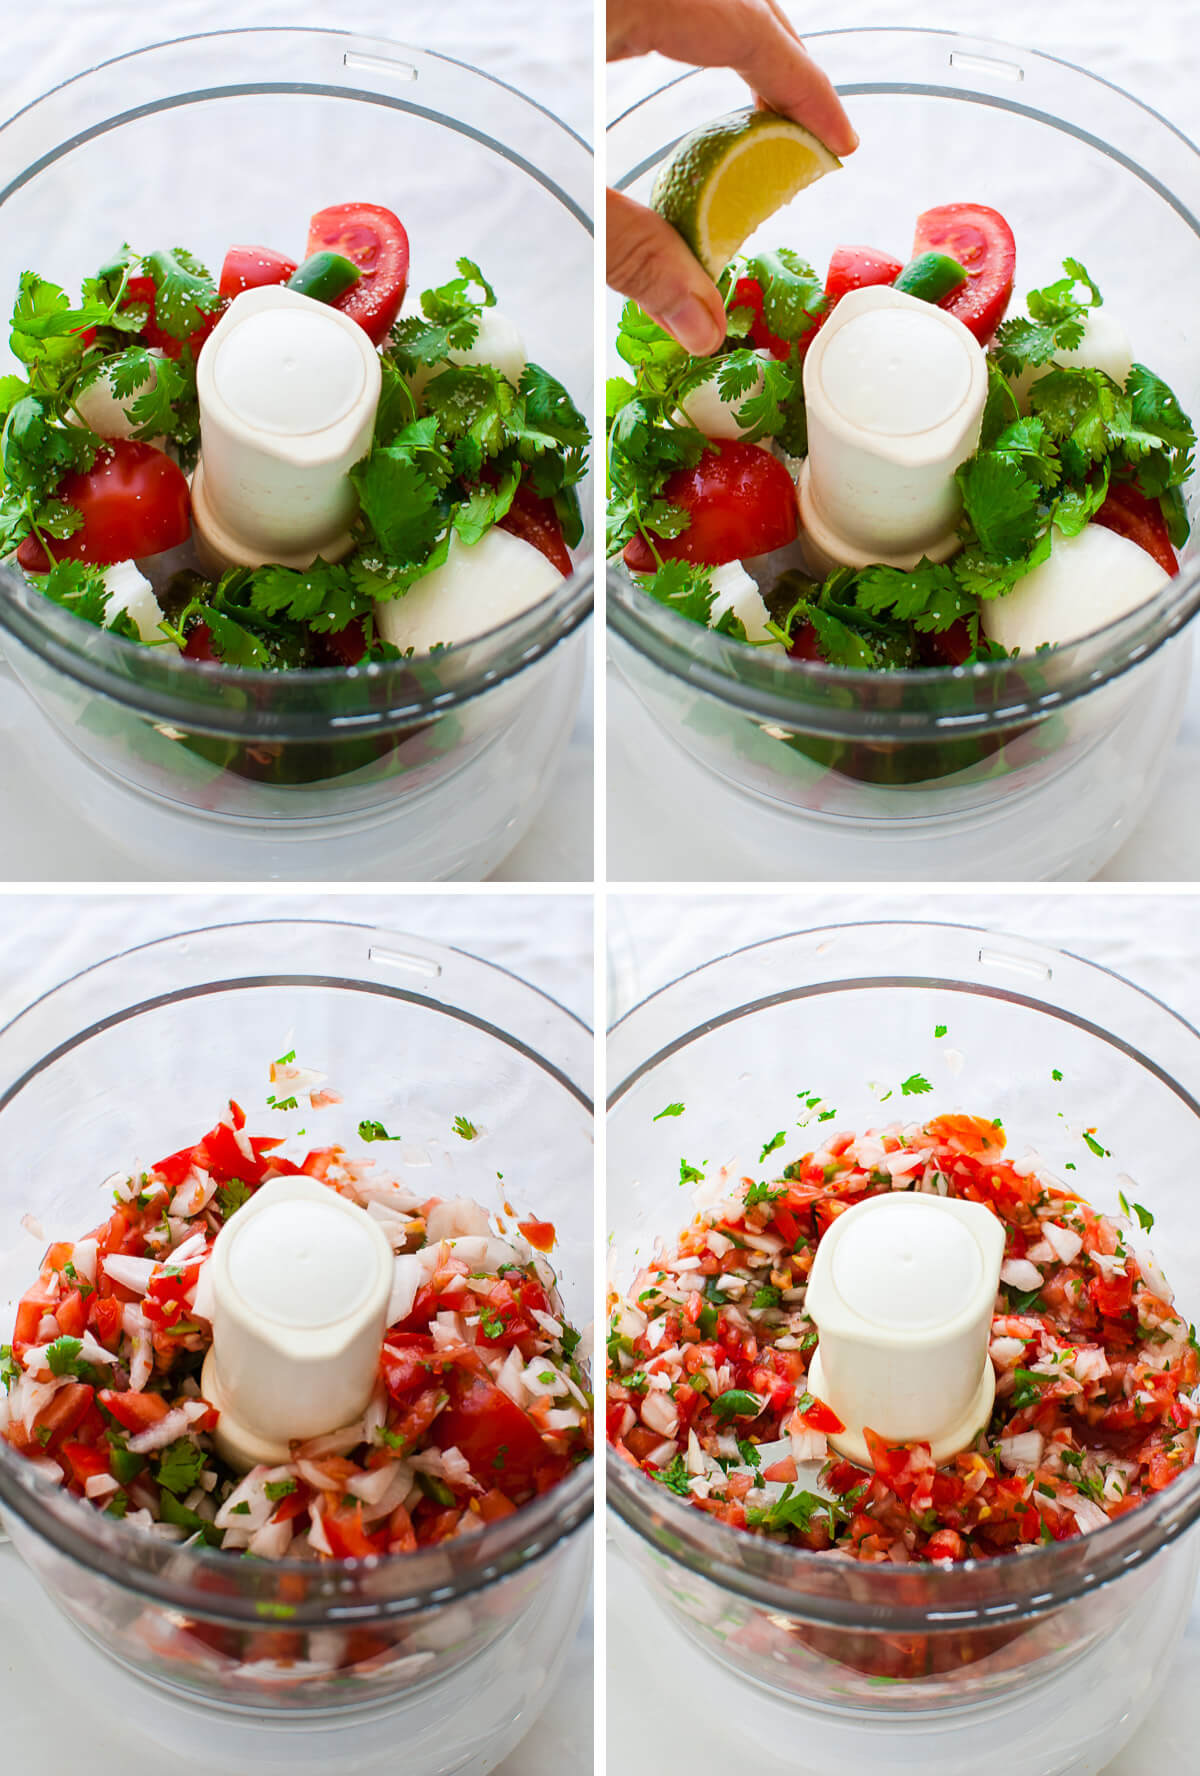 Collage of photos showing how to make pico de gallo in a food processor.